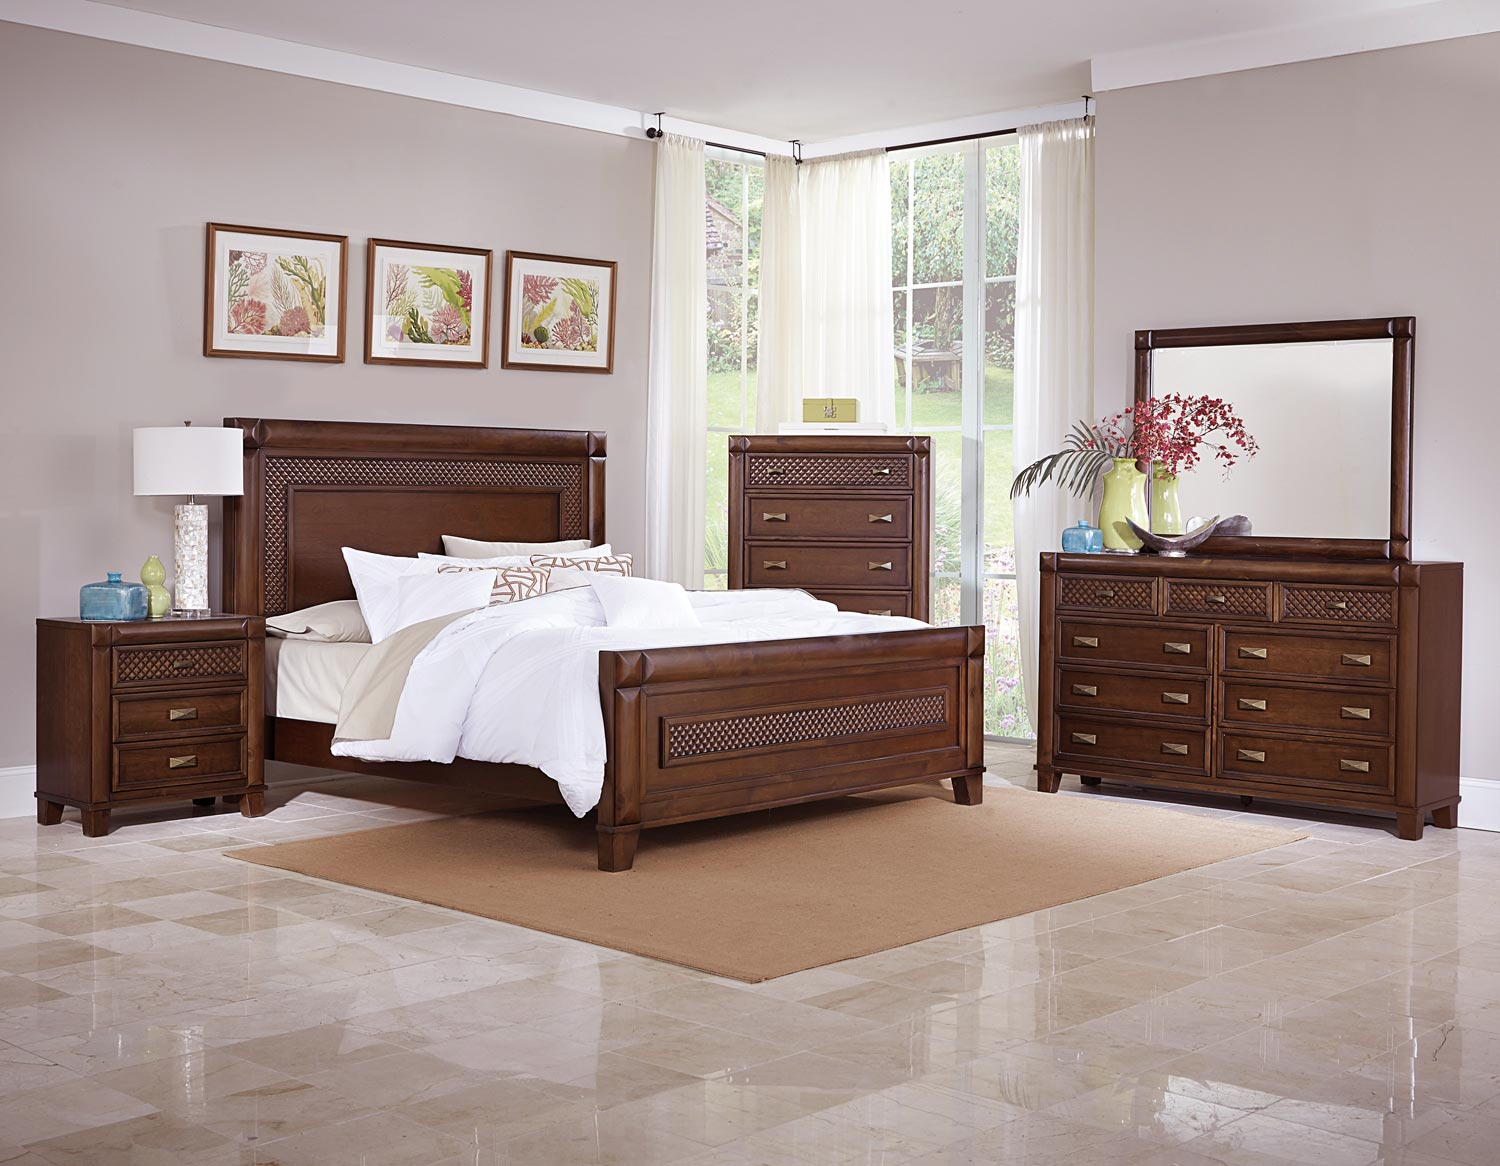 Tropical 5 Piece Contemporary California King Bedroom Set With Chest In  Warm Cherry Finish